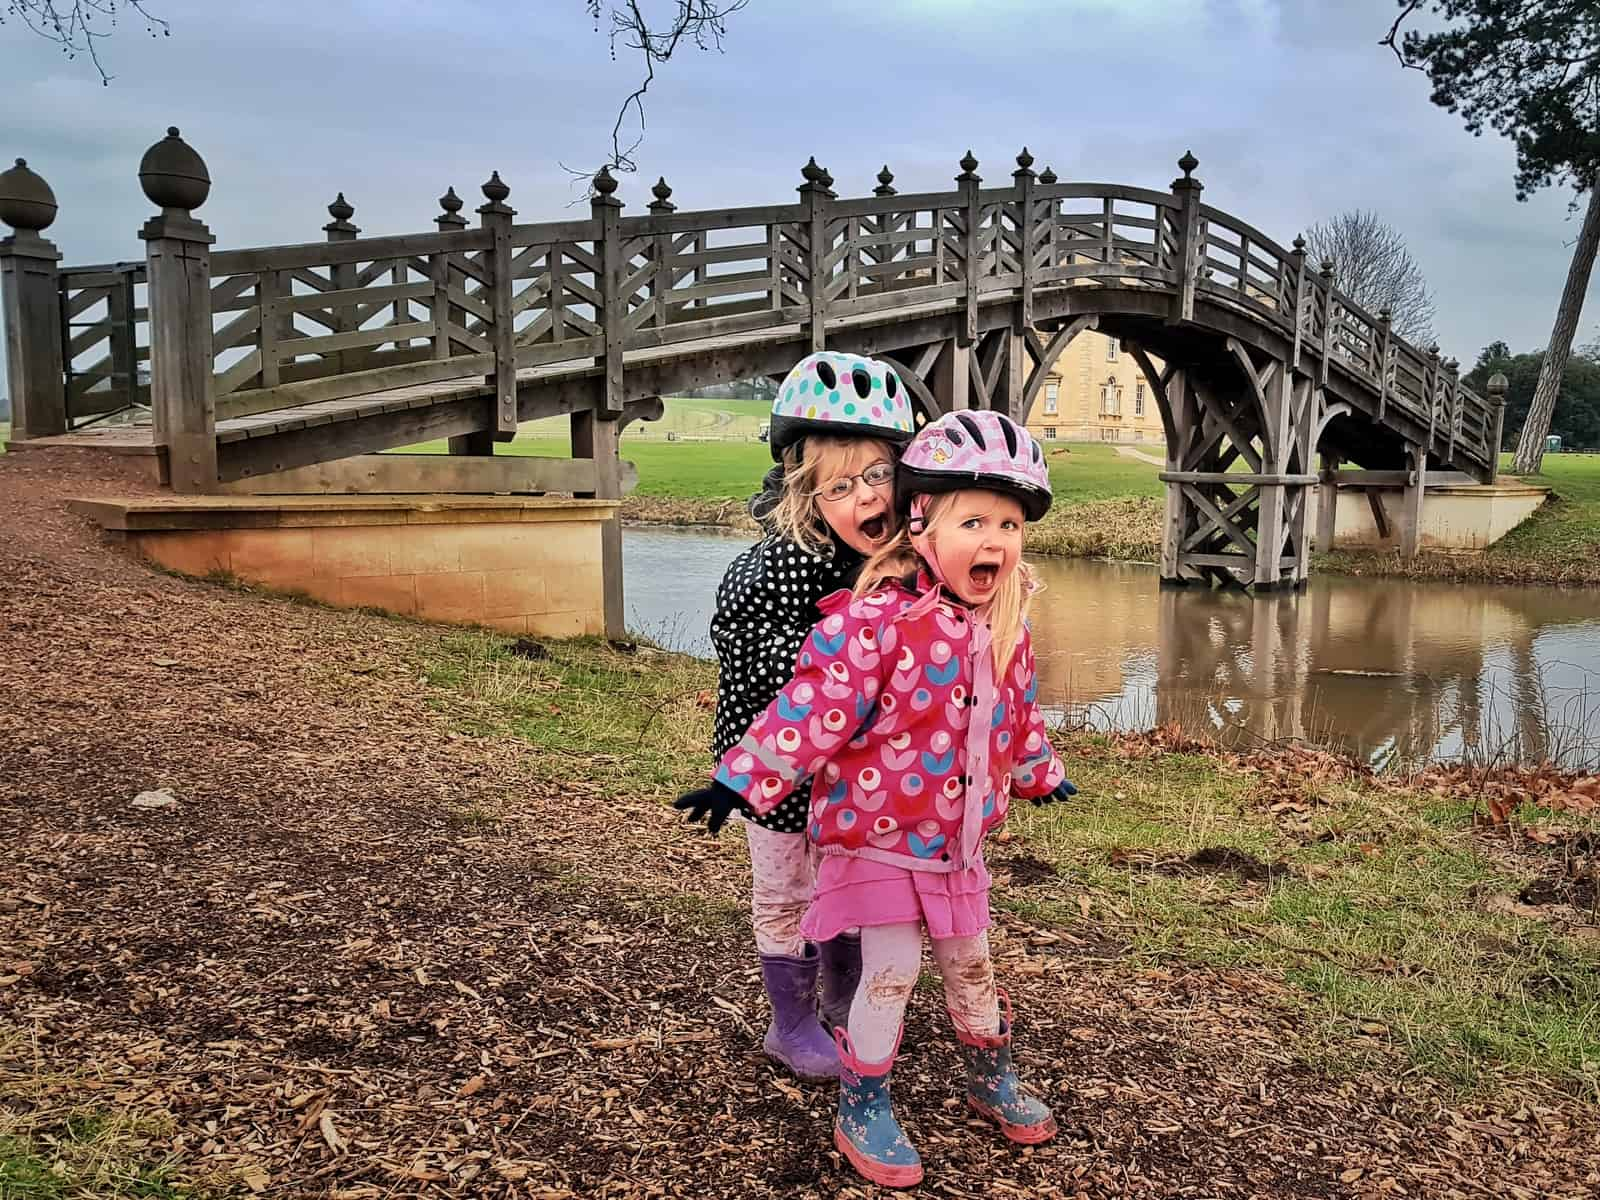 Two young girls standing by a river bridge at National Trust Croome, West Midlands